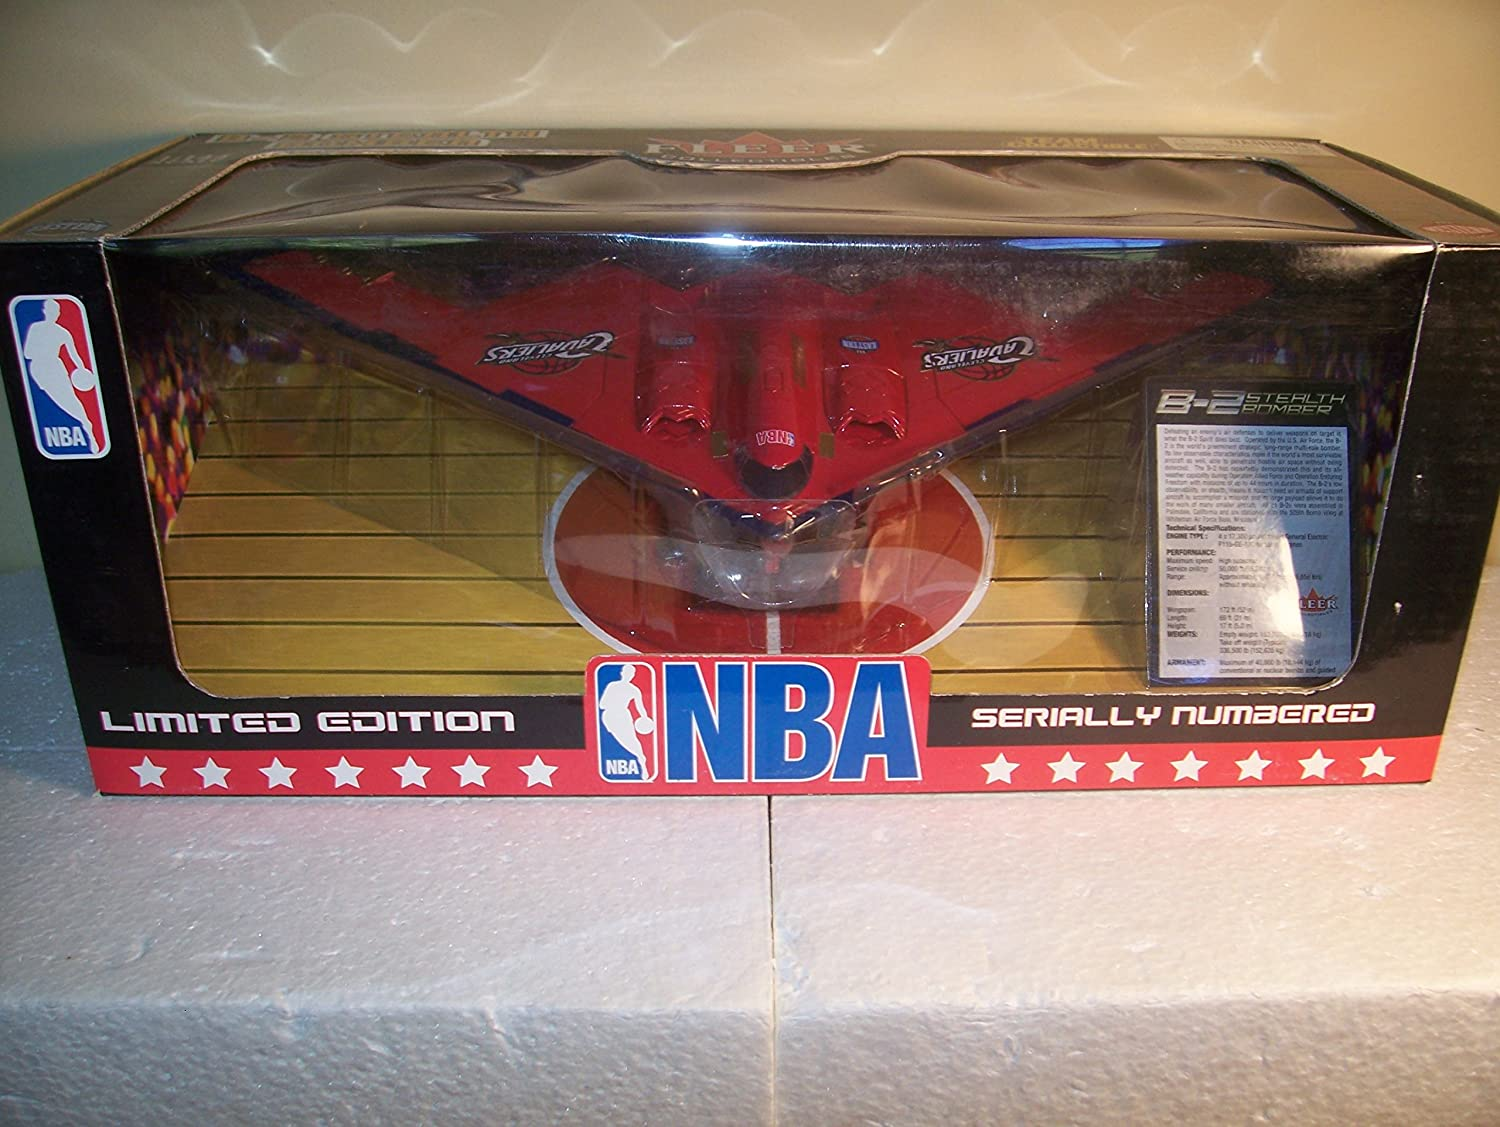 Cleveland Cavaliers Diecast B-2 Stealth Bomber Airplane